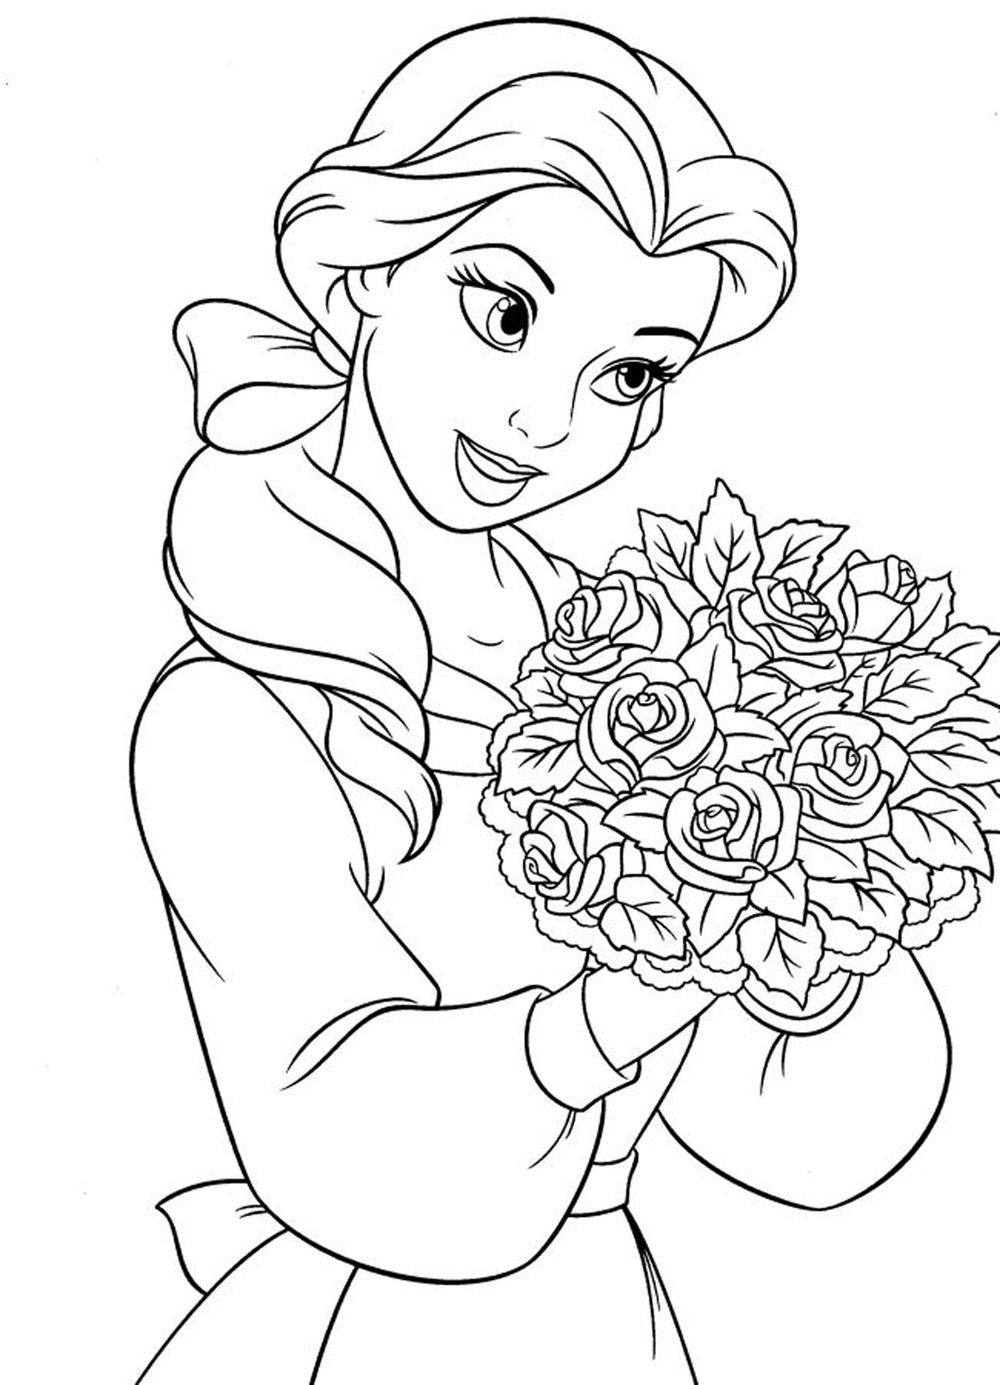 disney princess coloring book - Princess Print Out Coloring Pages